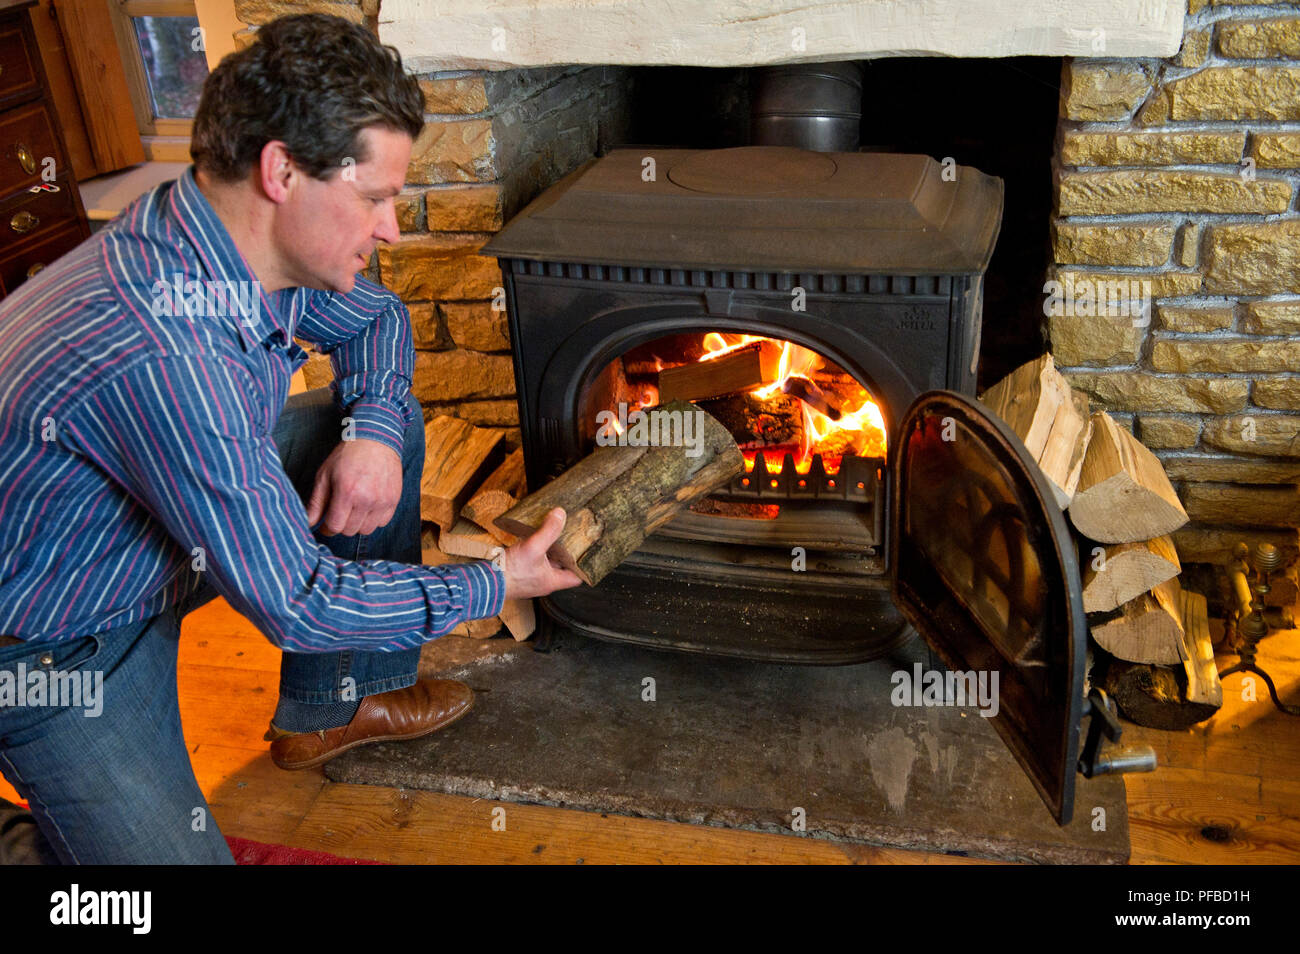 A man feeding logs into a wood burning stove - Stock Image